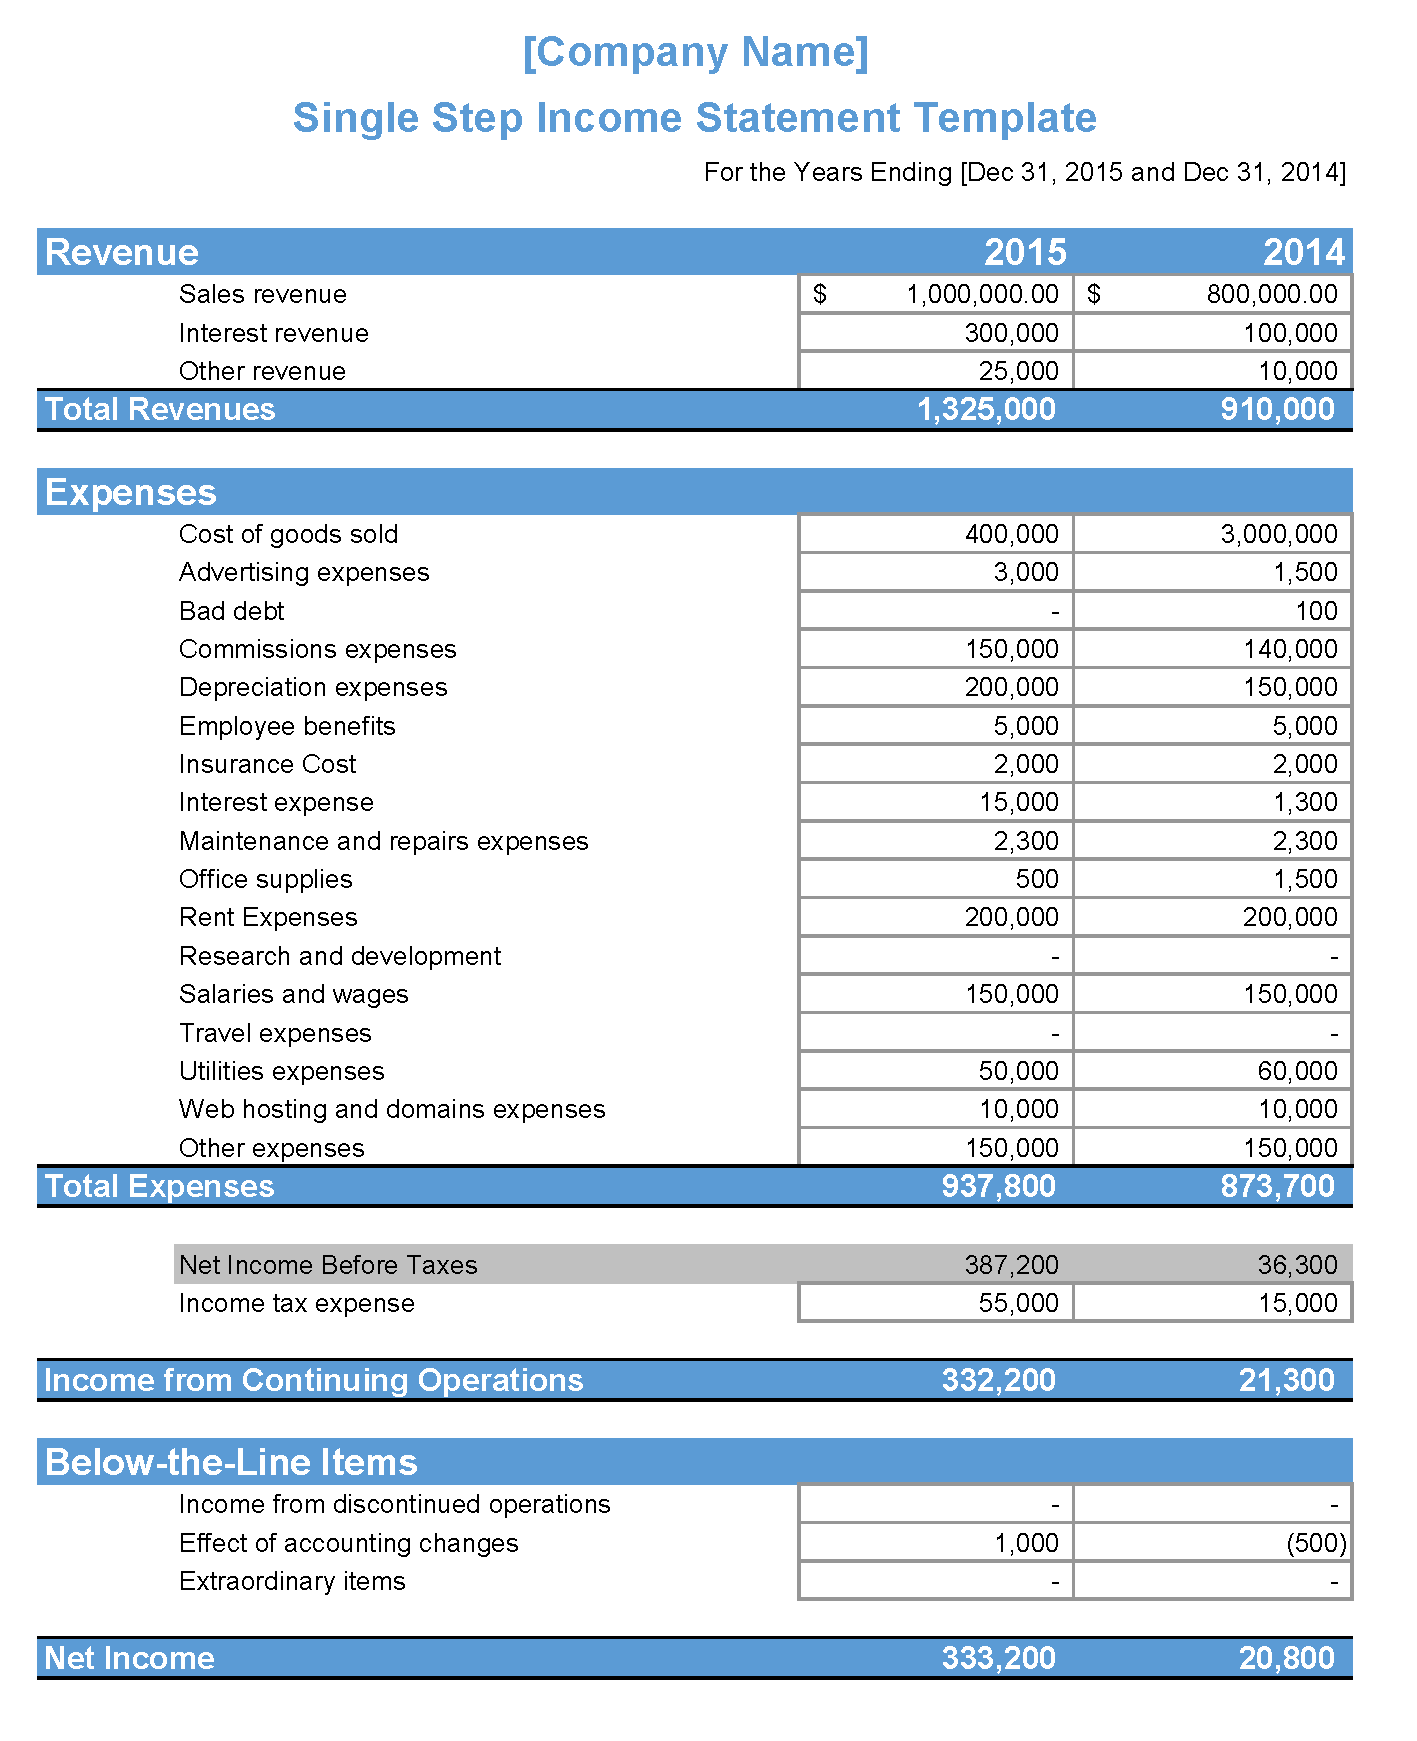 generic privacy policy template - single step income statement template wiki accounting